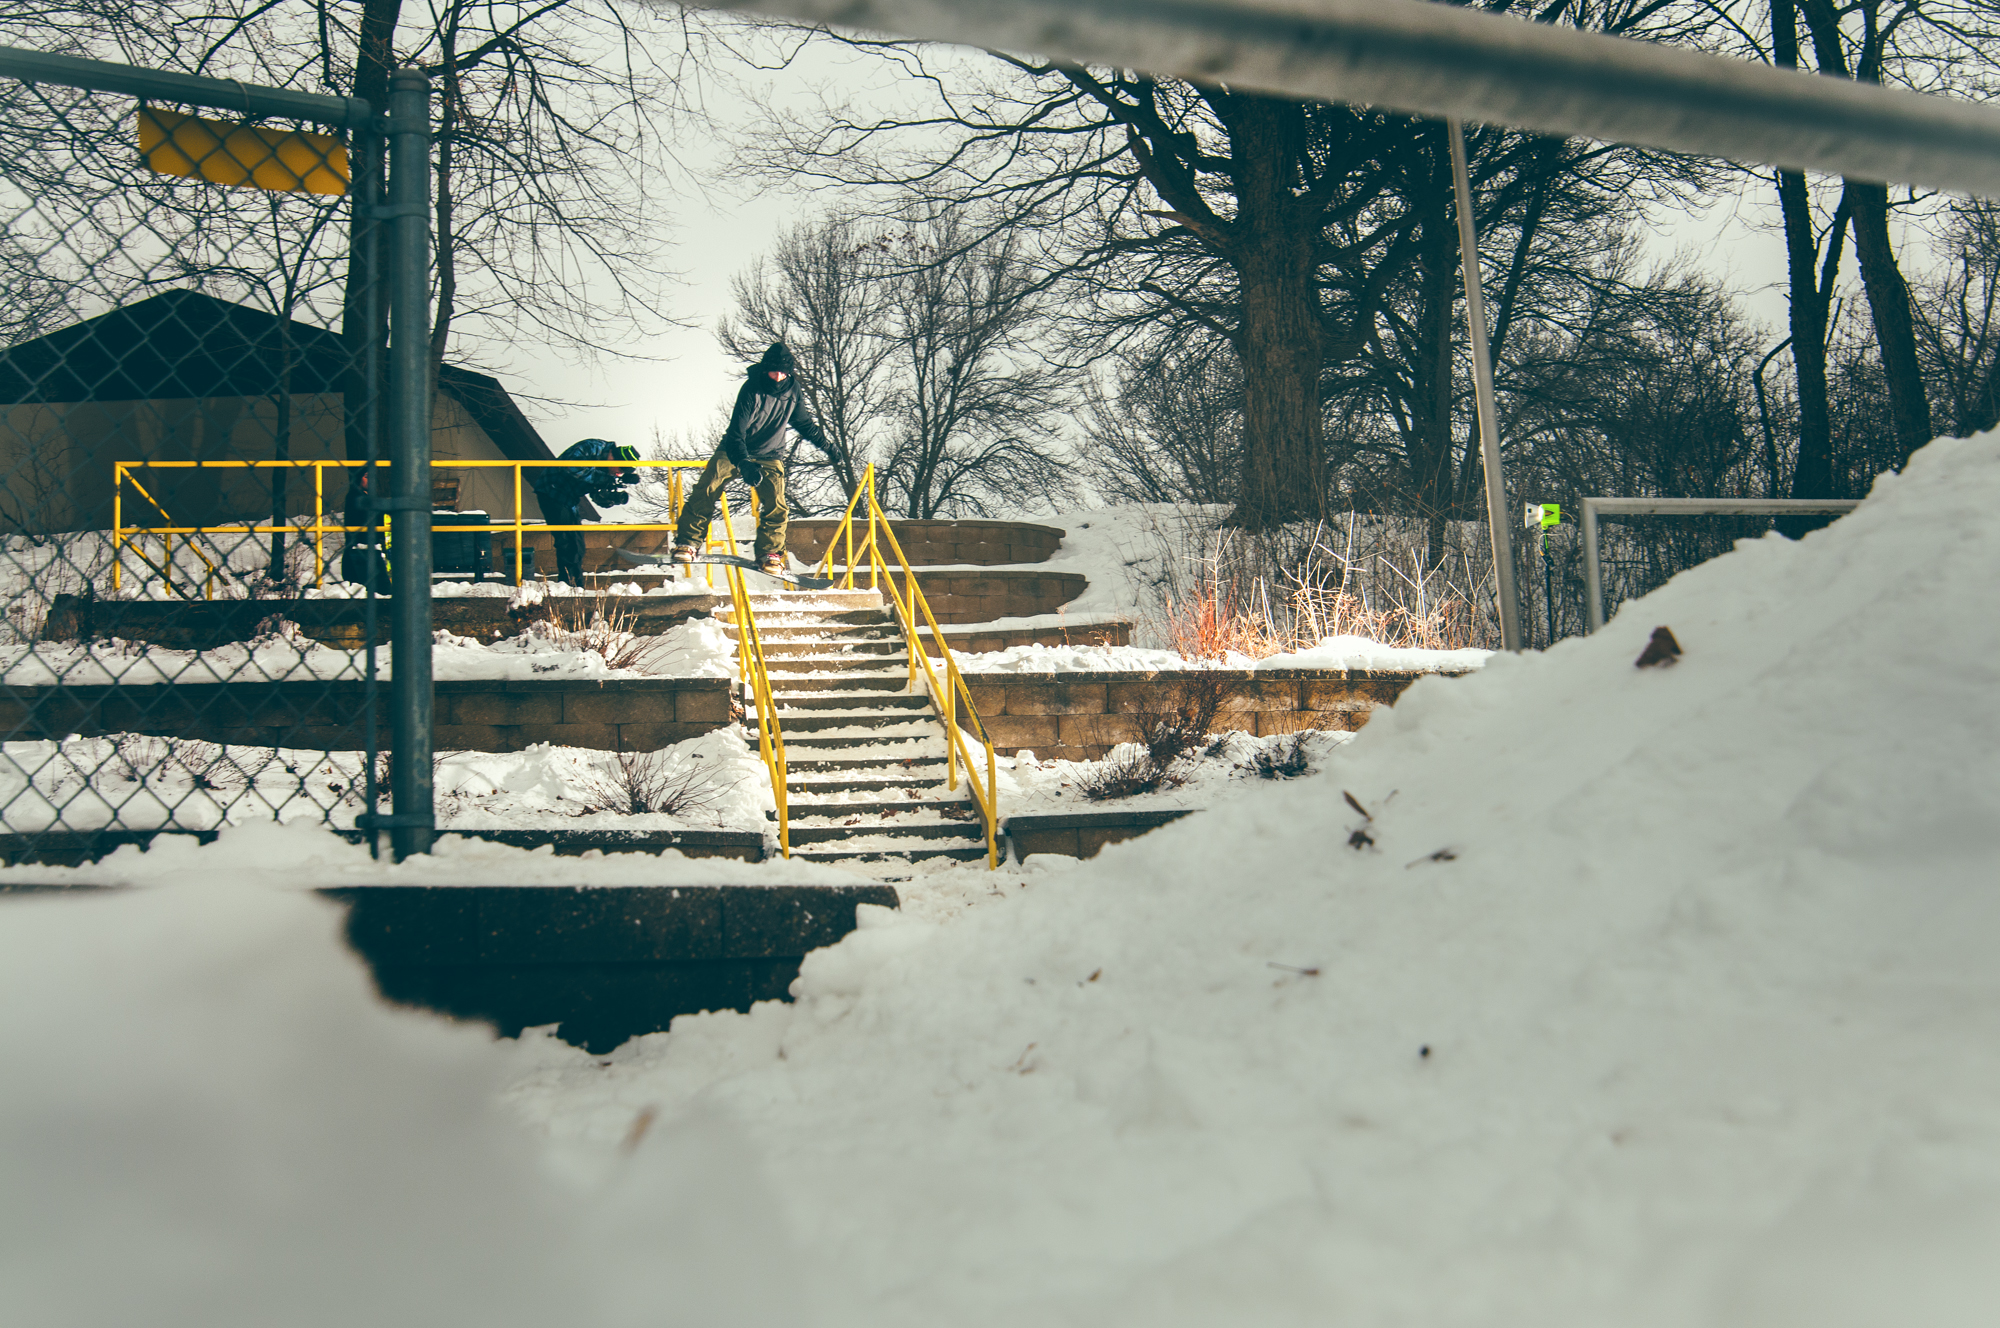 20140104_Bald_Egal_0183-Edit.jpg